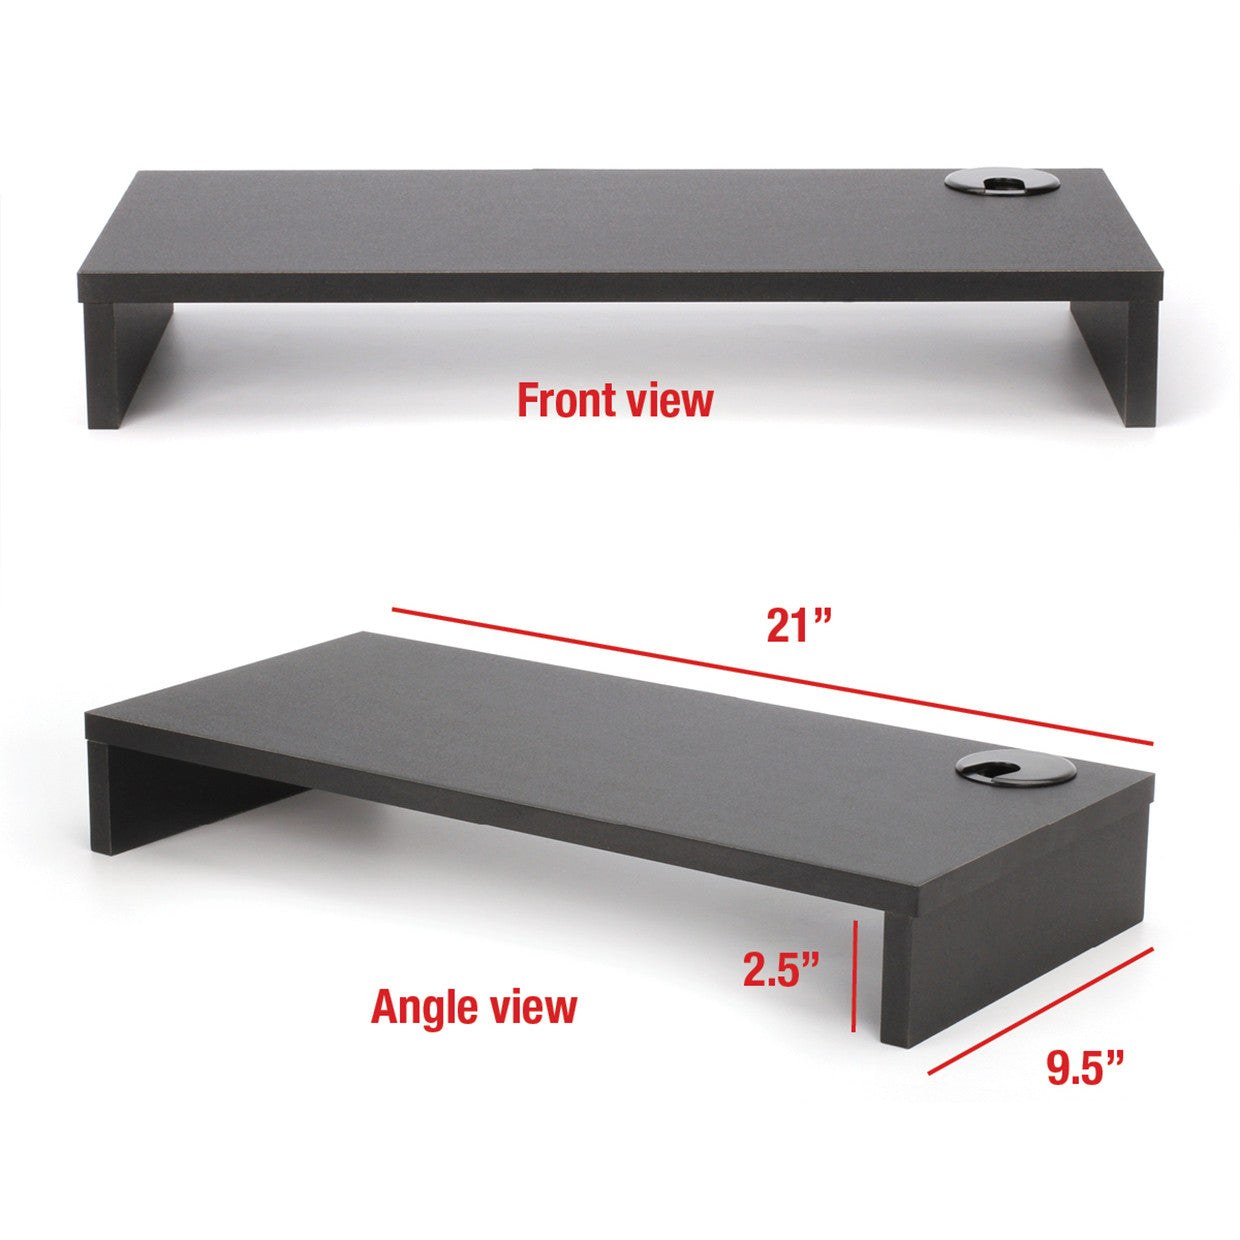 duty shelf laser balt office product mobile free today heavy stand shipping printer overstock supplies grey